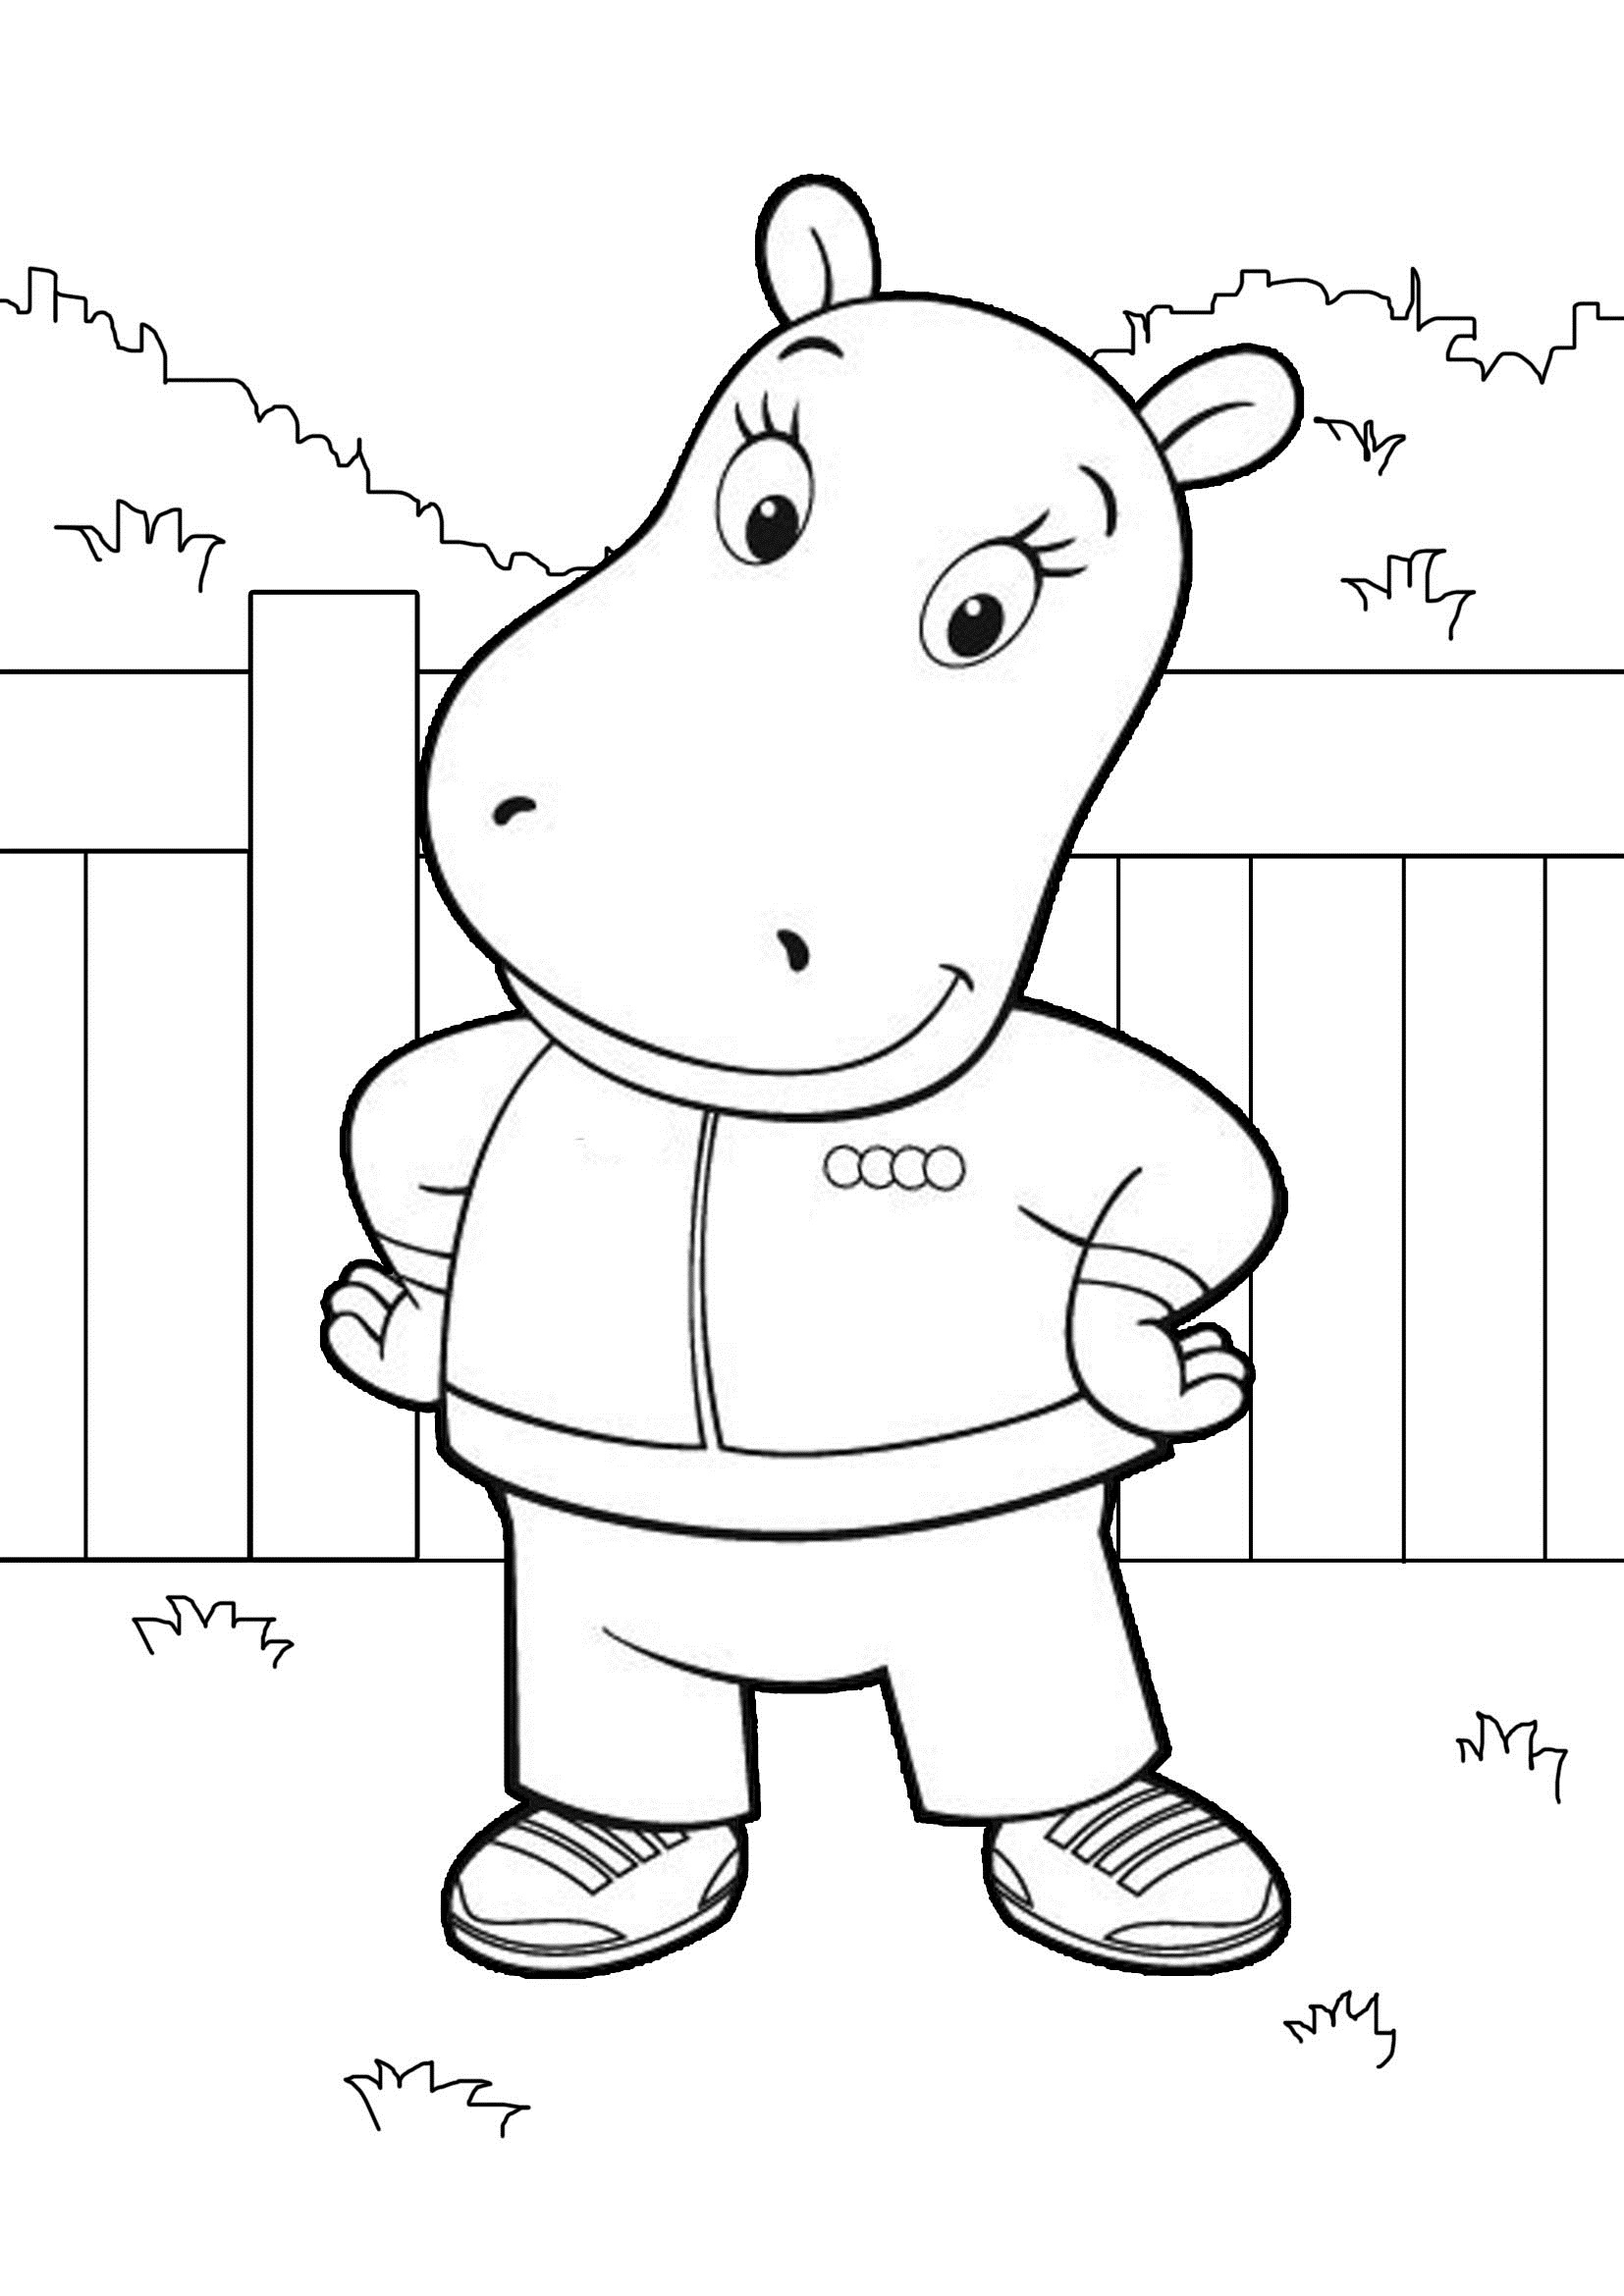 fun colouring pages for kids printable neopets coloring pages for kids cool2bkids colouring pages fun kids for